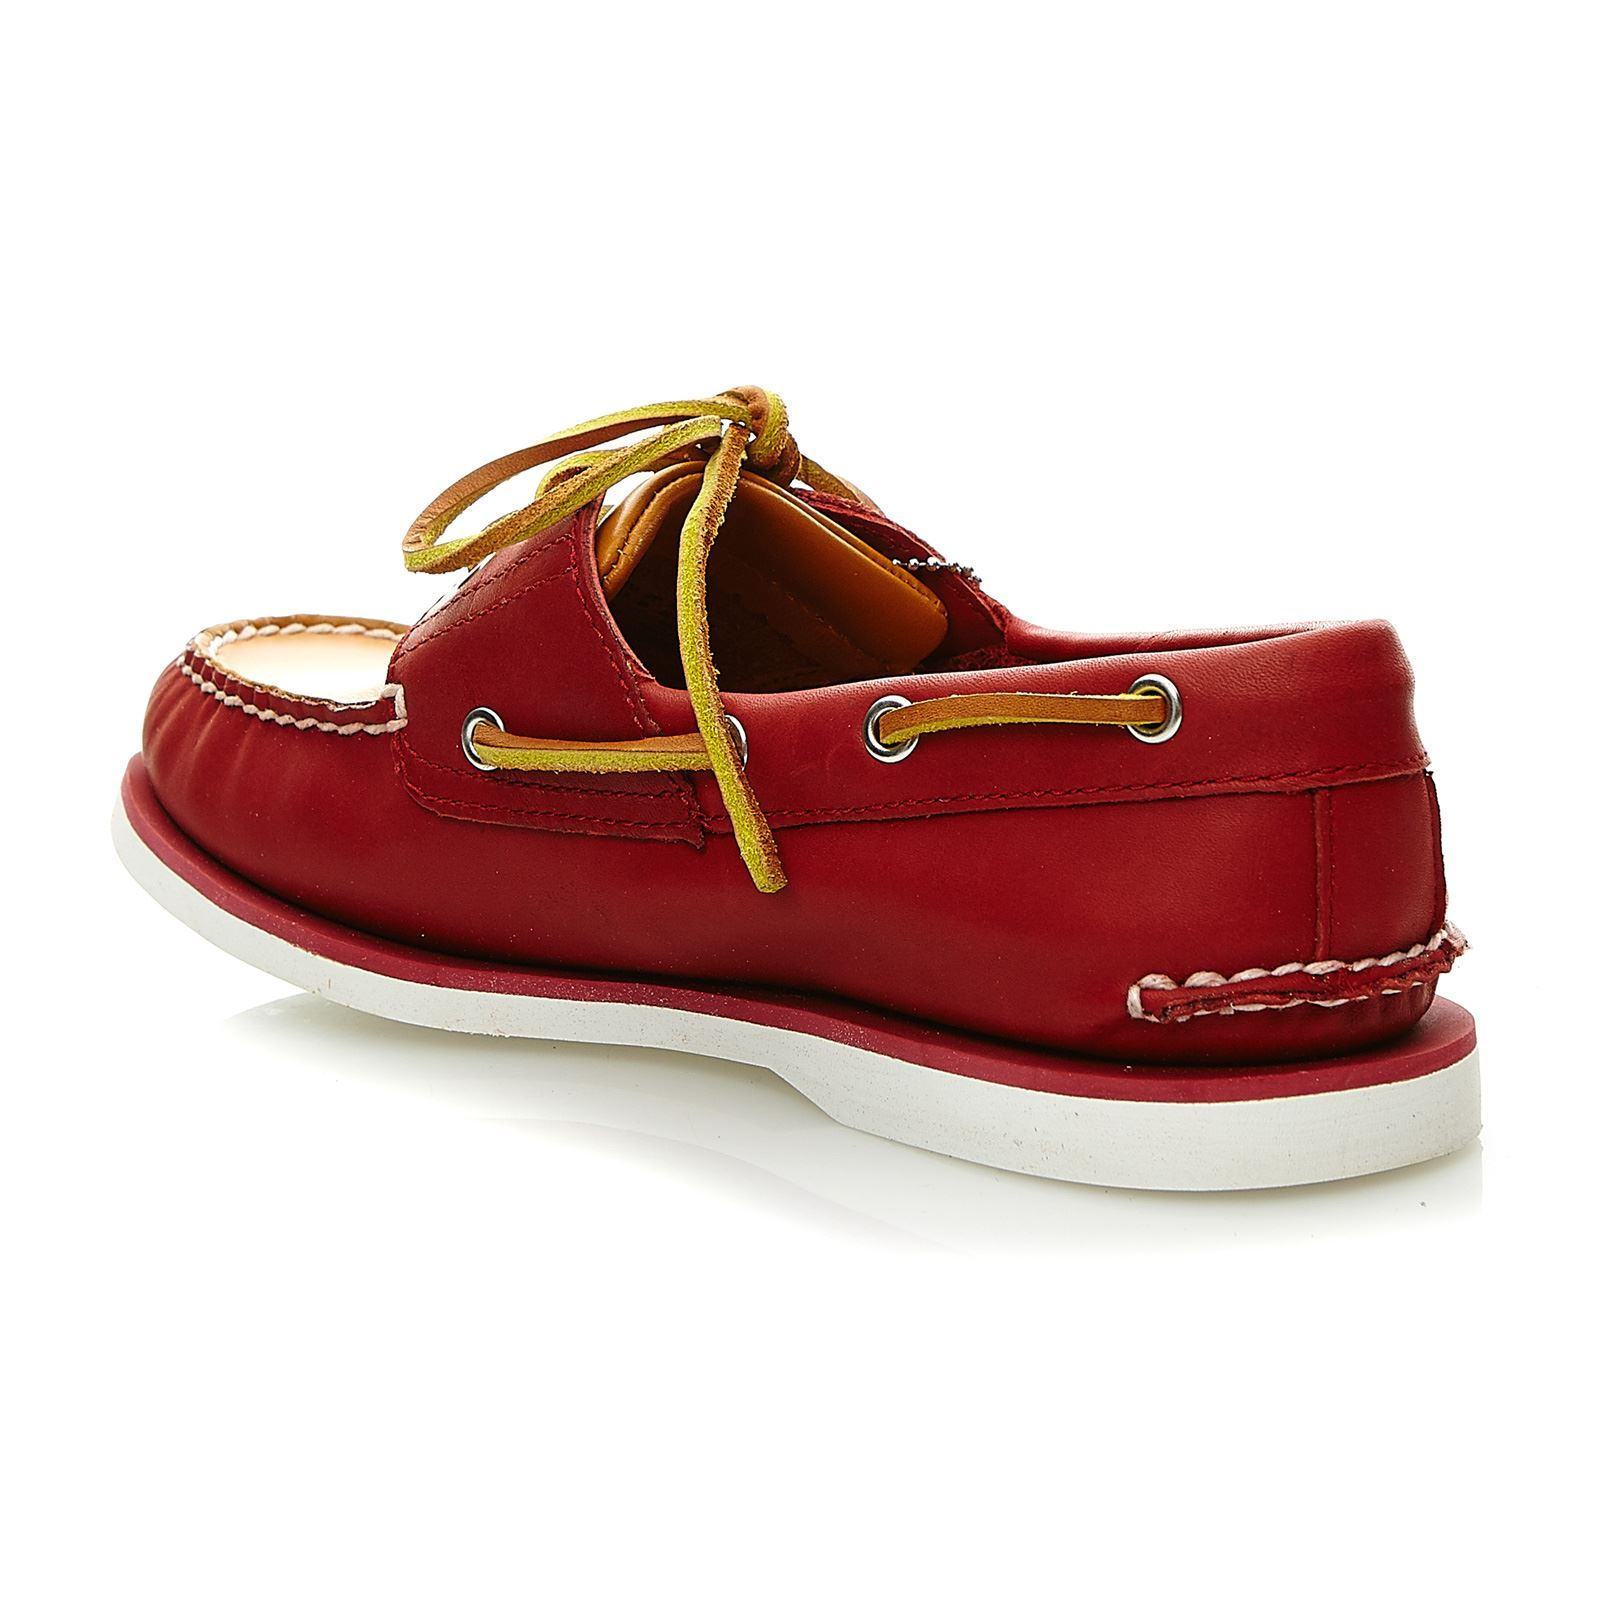 Brandalley Timberland Chaussures Bateau Rouge Timberland Chaussures Bateau  Rouge gnOqnF0 64f6ef3e14e9